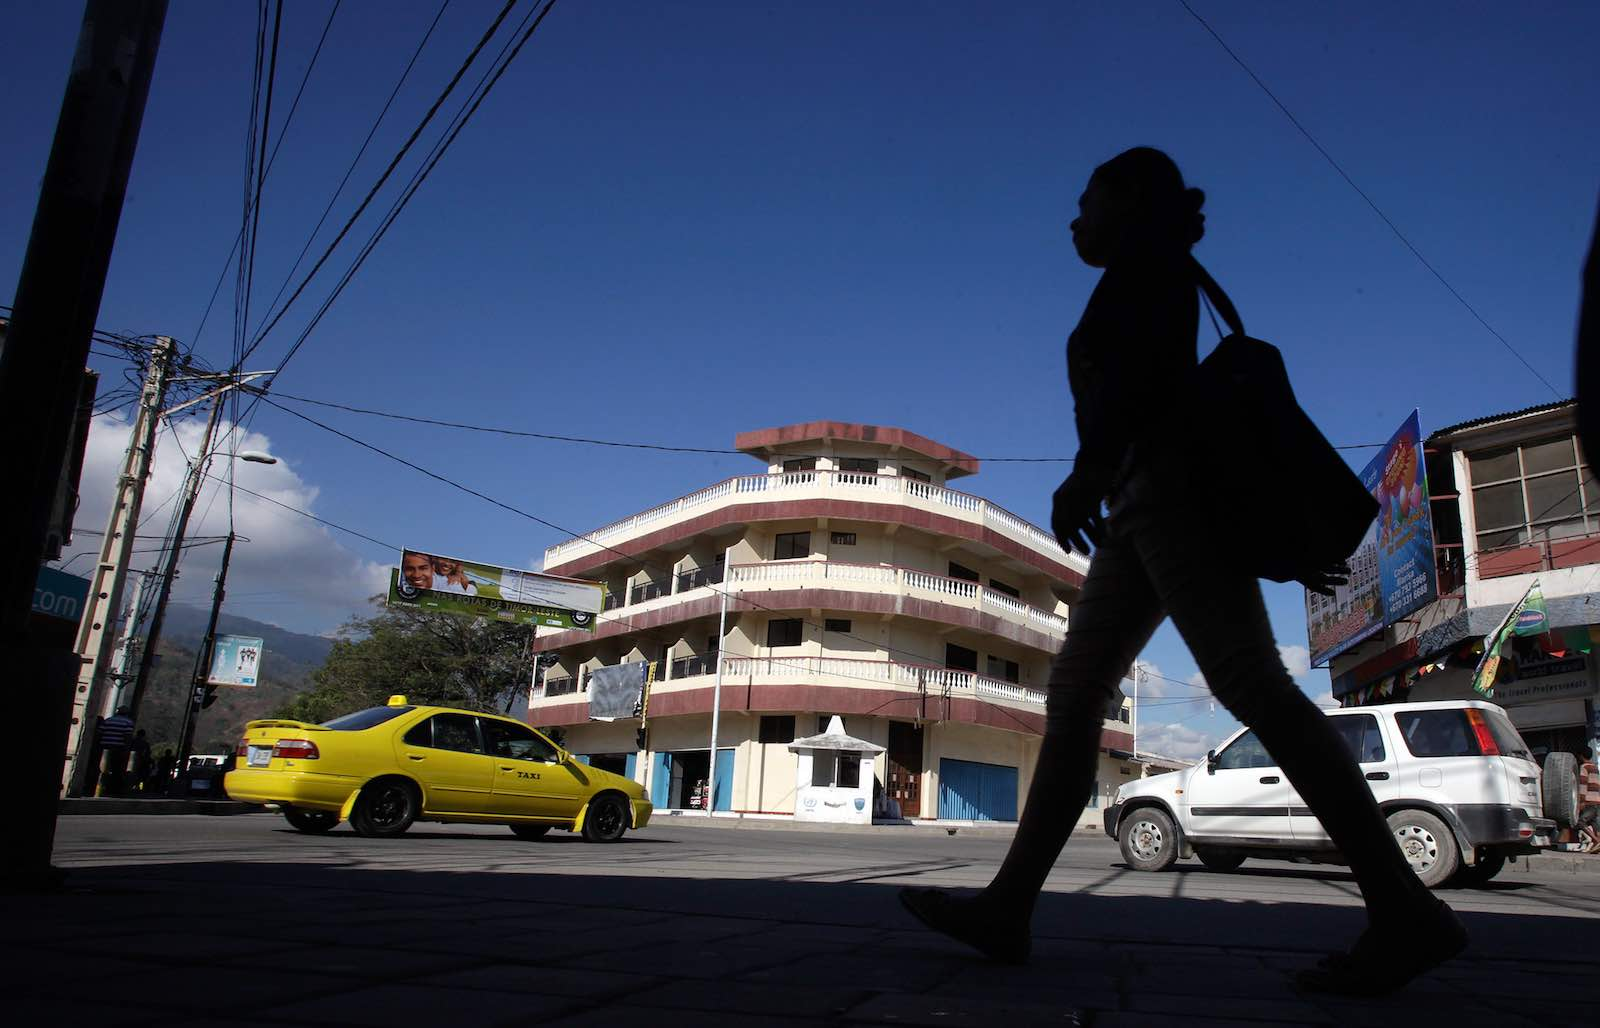 Downtown Dili, 2011 (Photo: Asian Development Bank/Flickr)